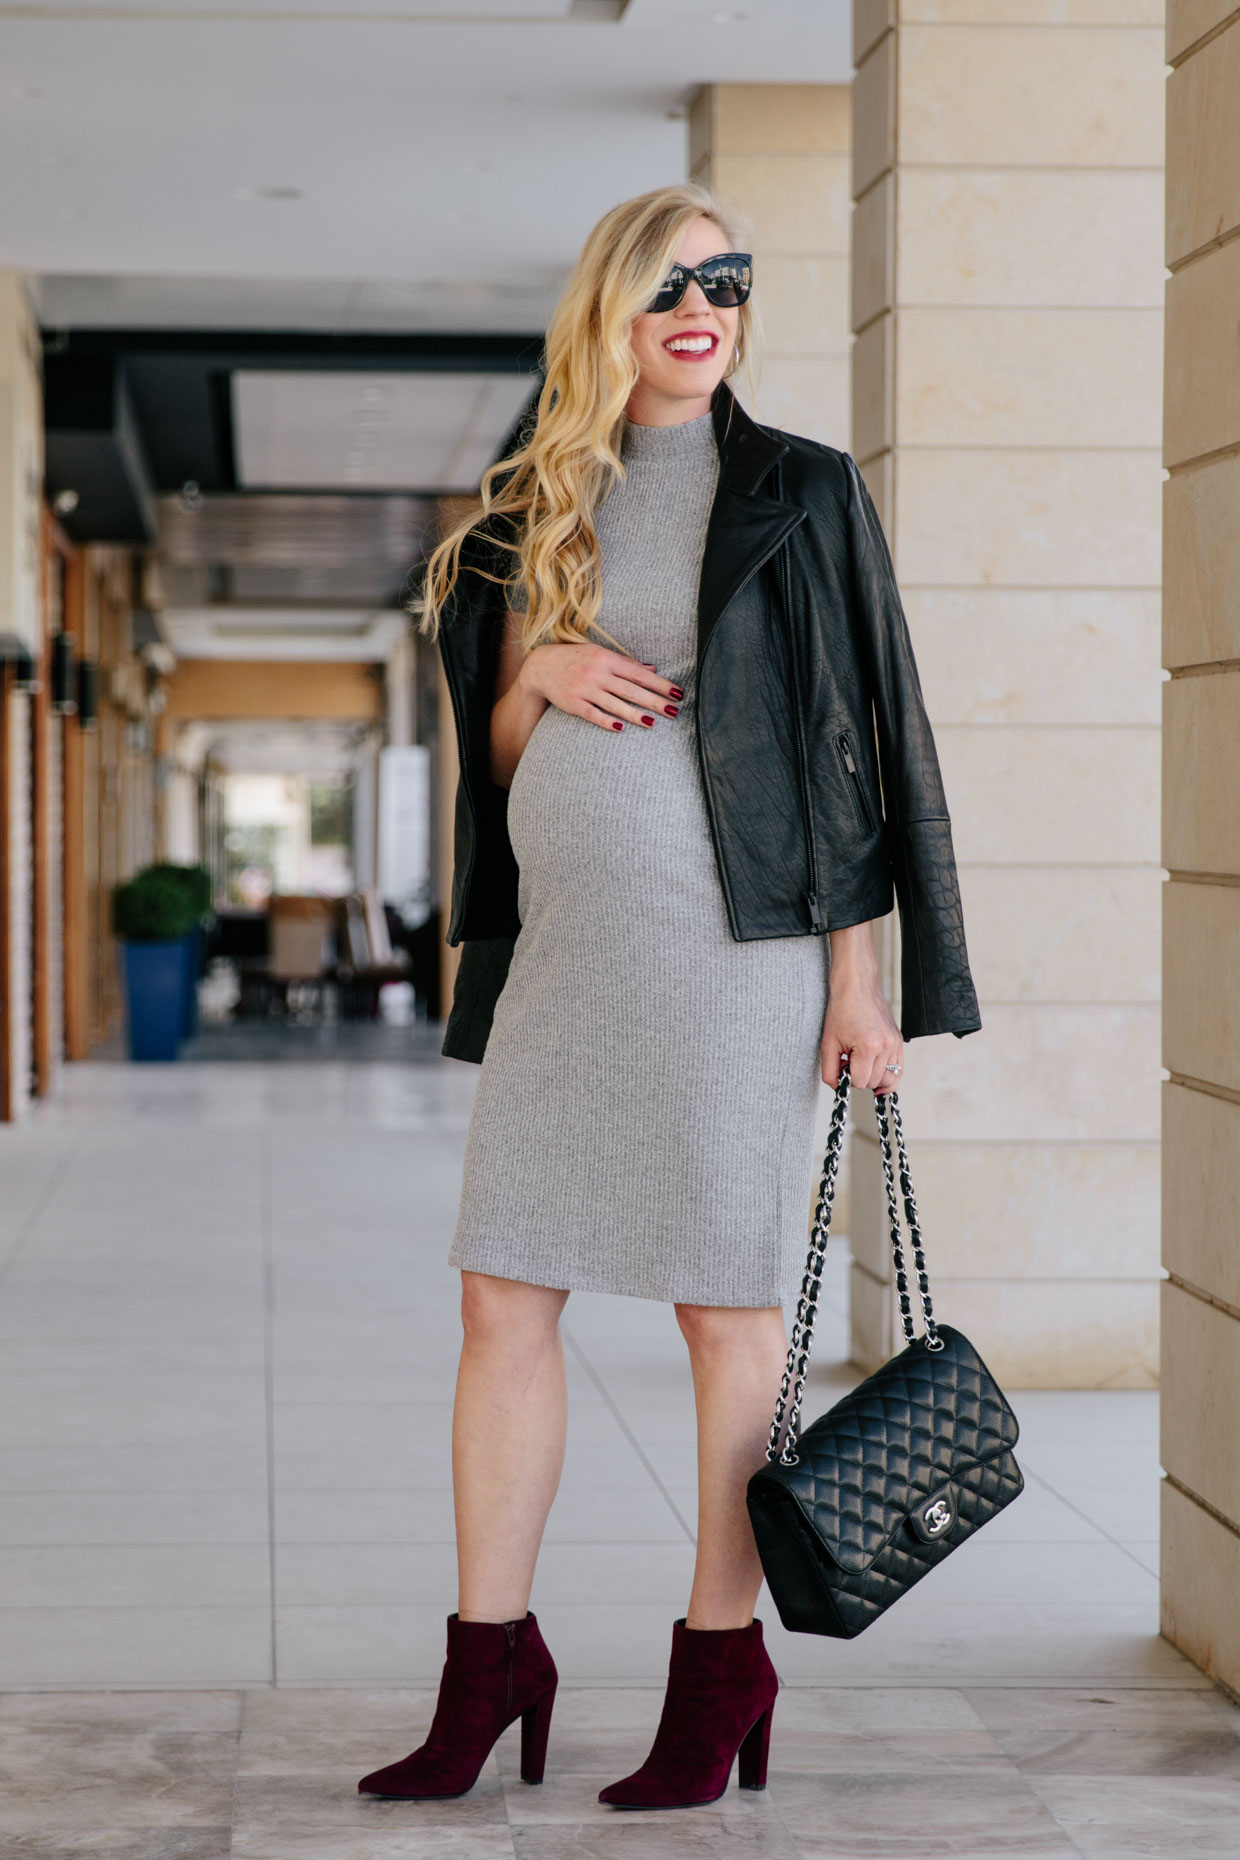 Edgy Maternity Outfit: Leather Jacket, Sweater Dress & Burgundy Boots